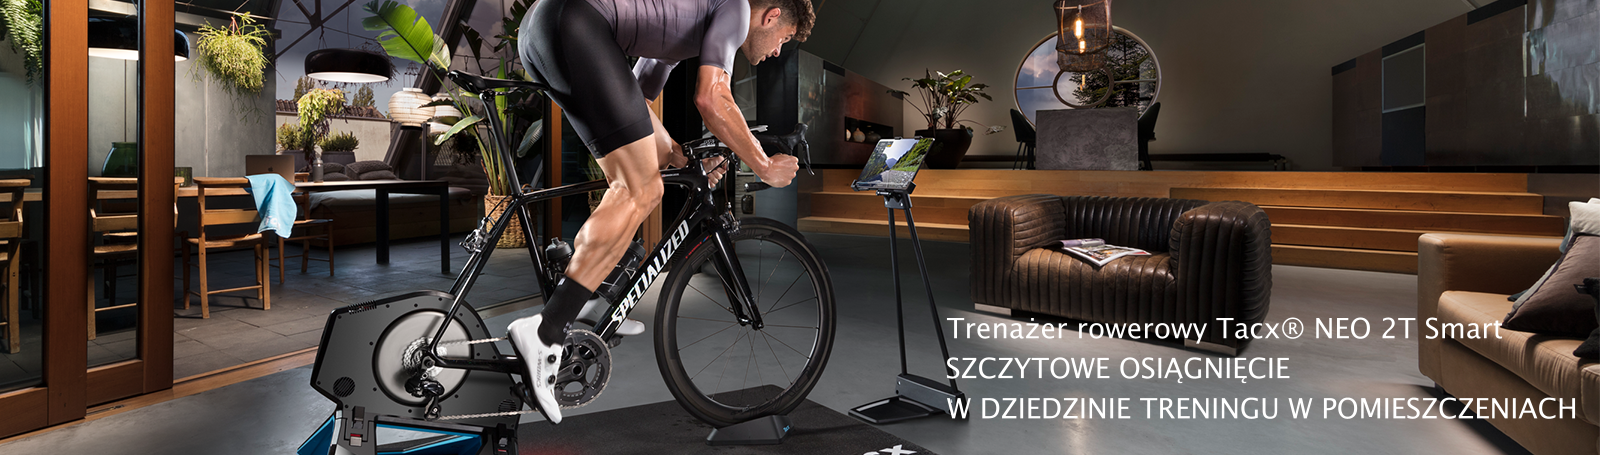 Trenażer rowerowy Tacx® NEO 2T Smart